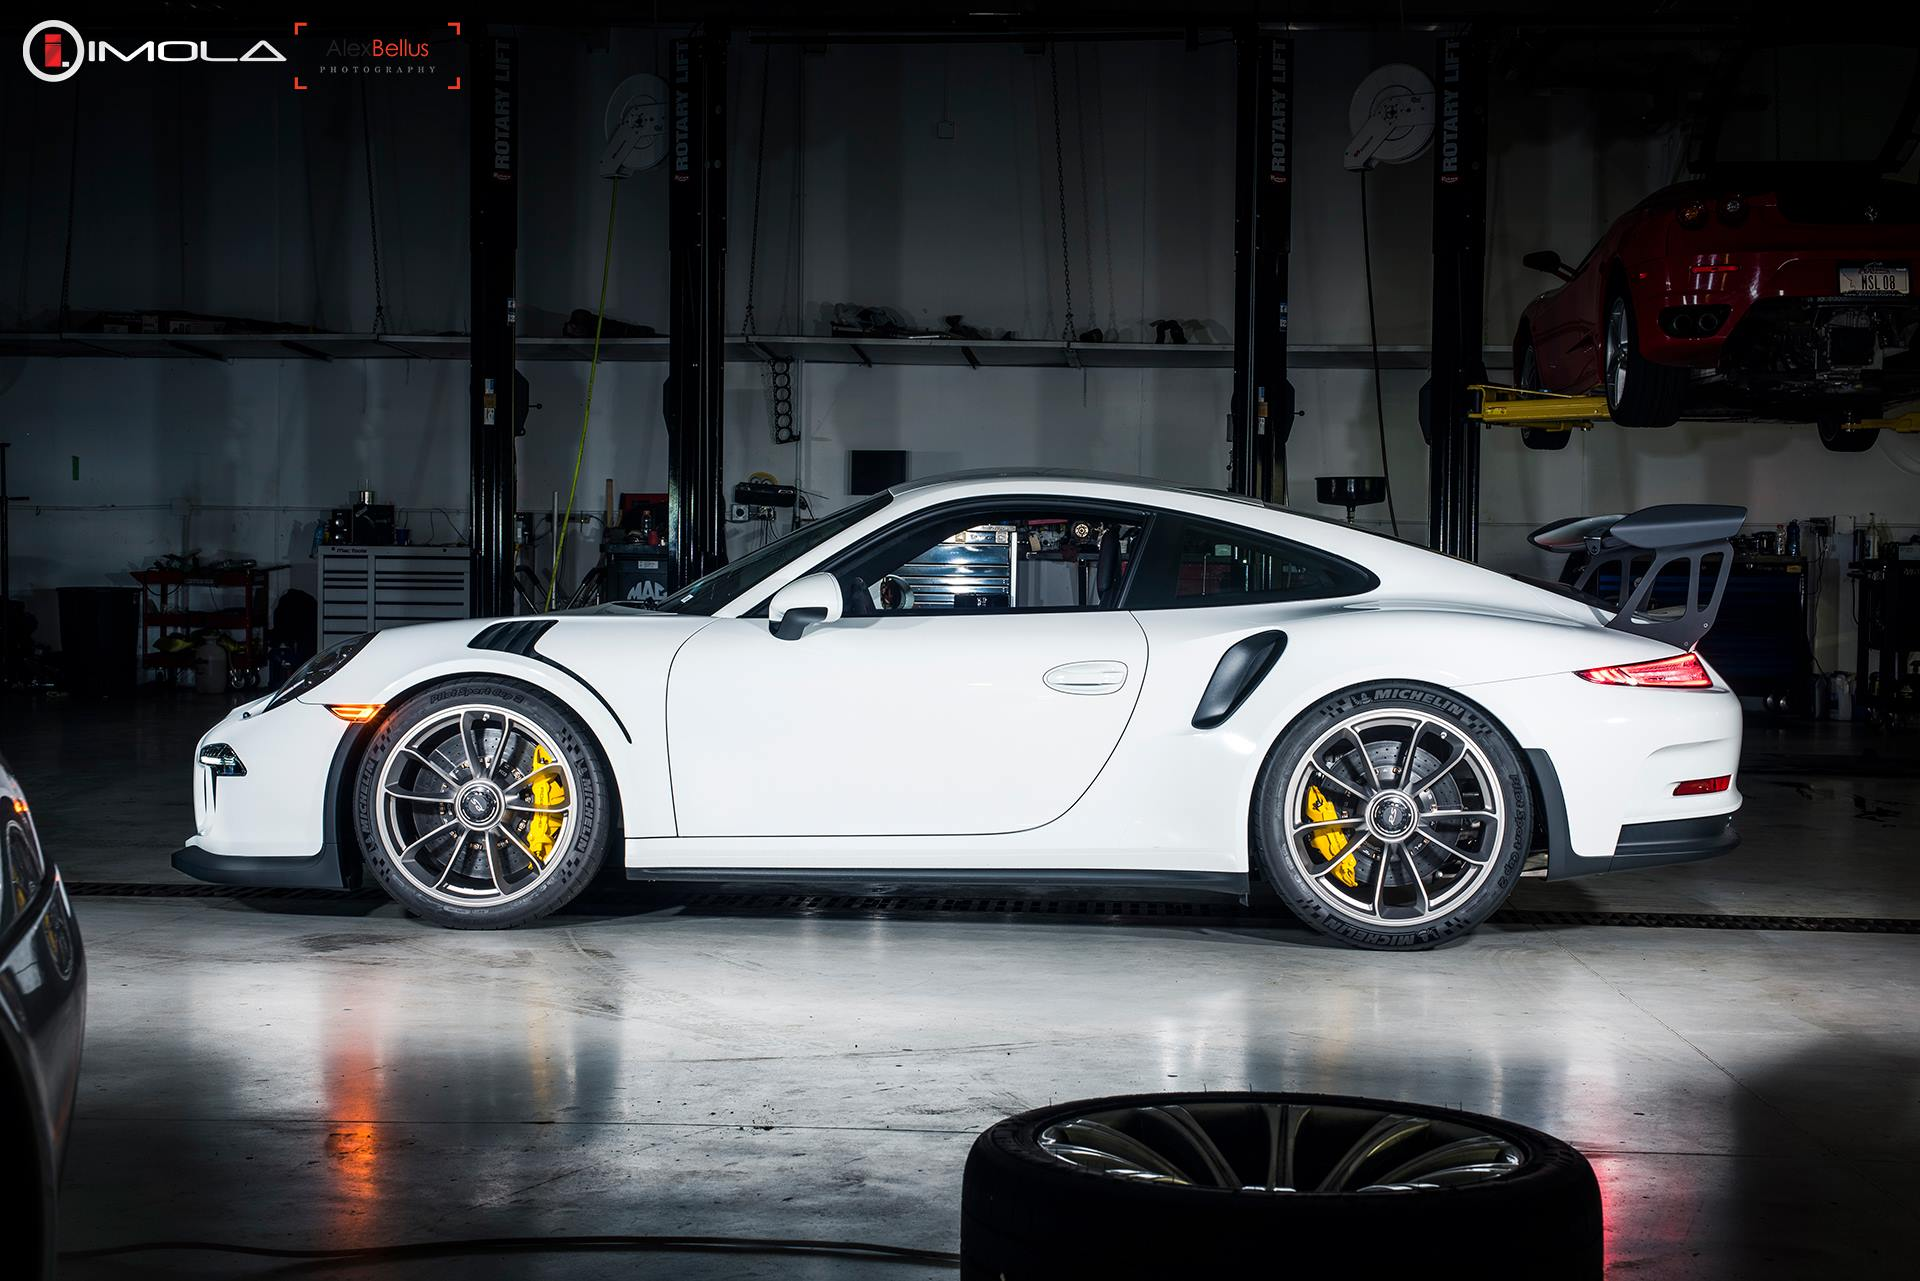 meet the first 2016 porsche 911 gt3 rs in the us gtspirit. Black Bedroom Furniture Sets. Home Design Ideas